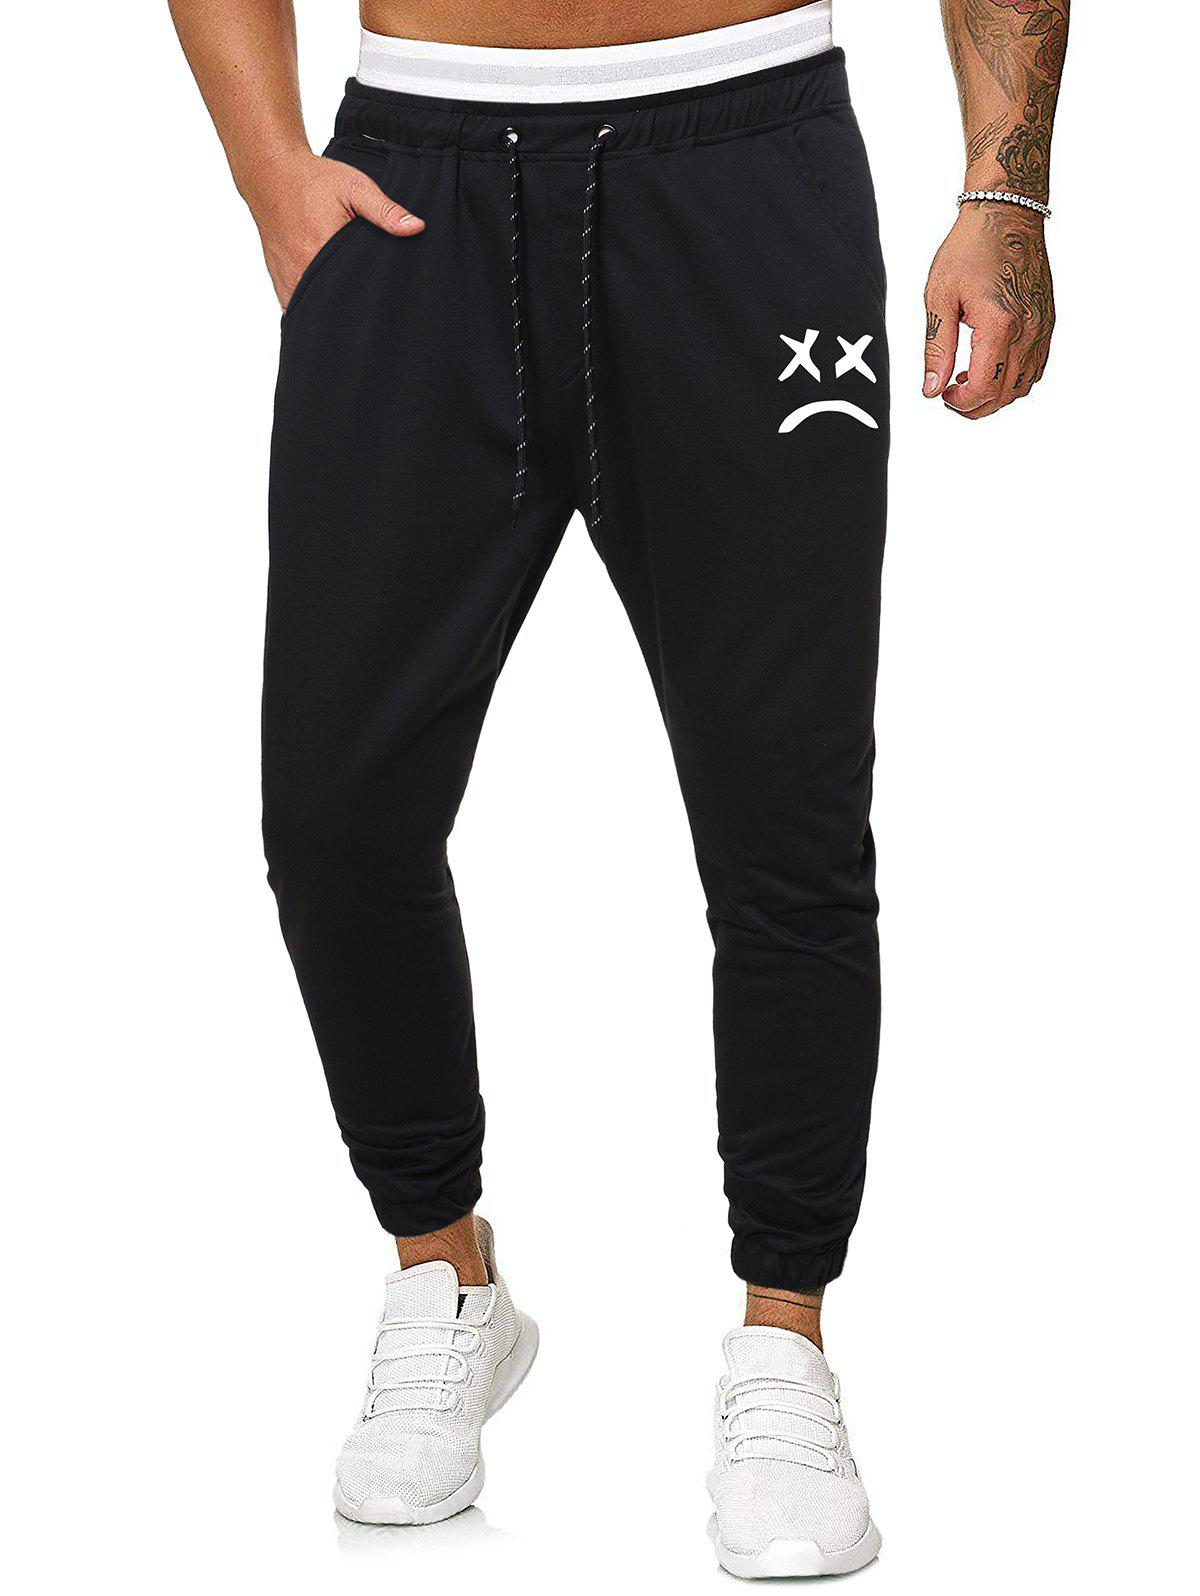 Funny Face Graphic Casual Drawstring Sweatpants - BLACK XL